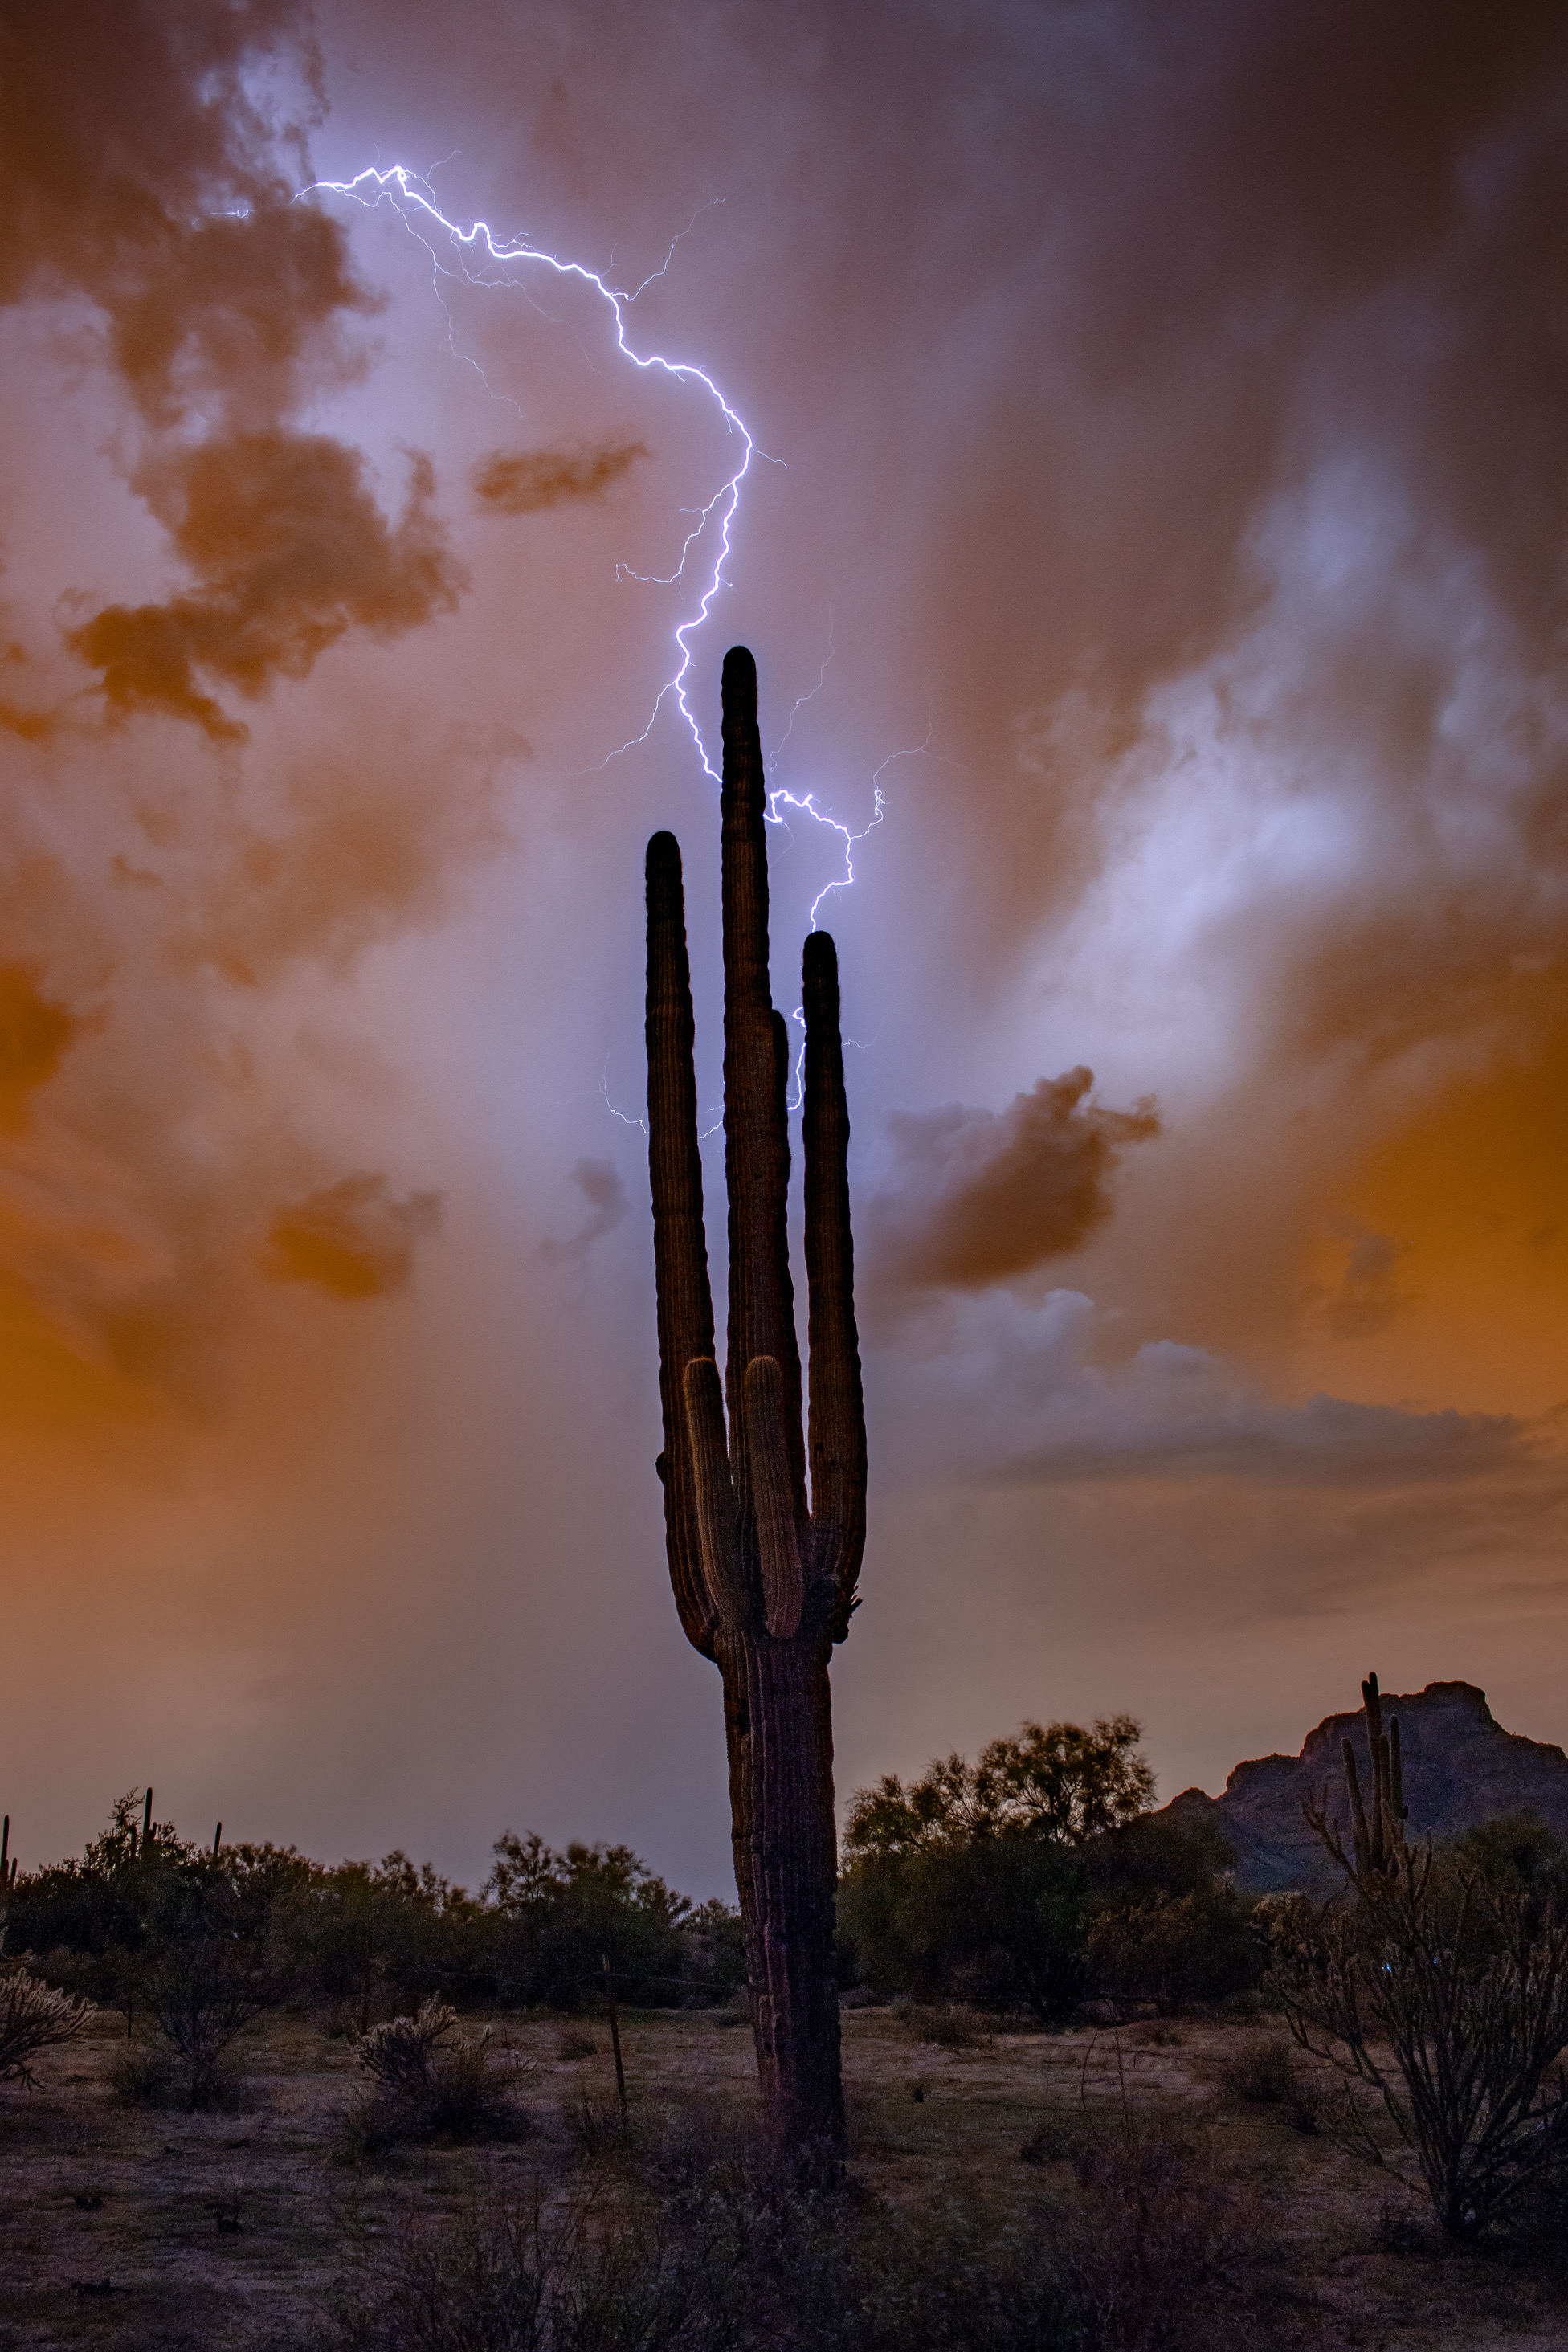 Scenic Arizona Photography from Joan Wood – January 12th